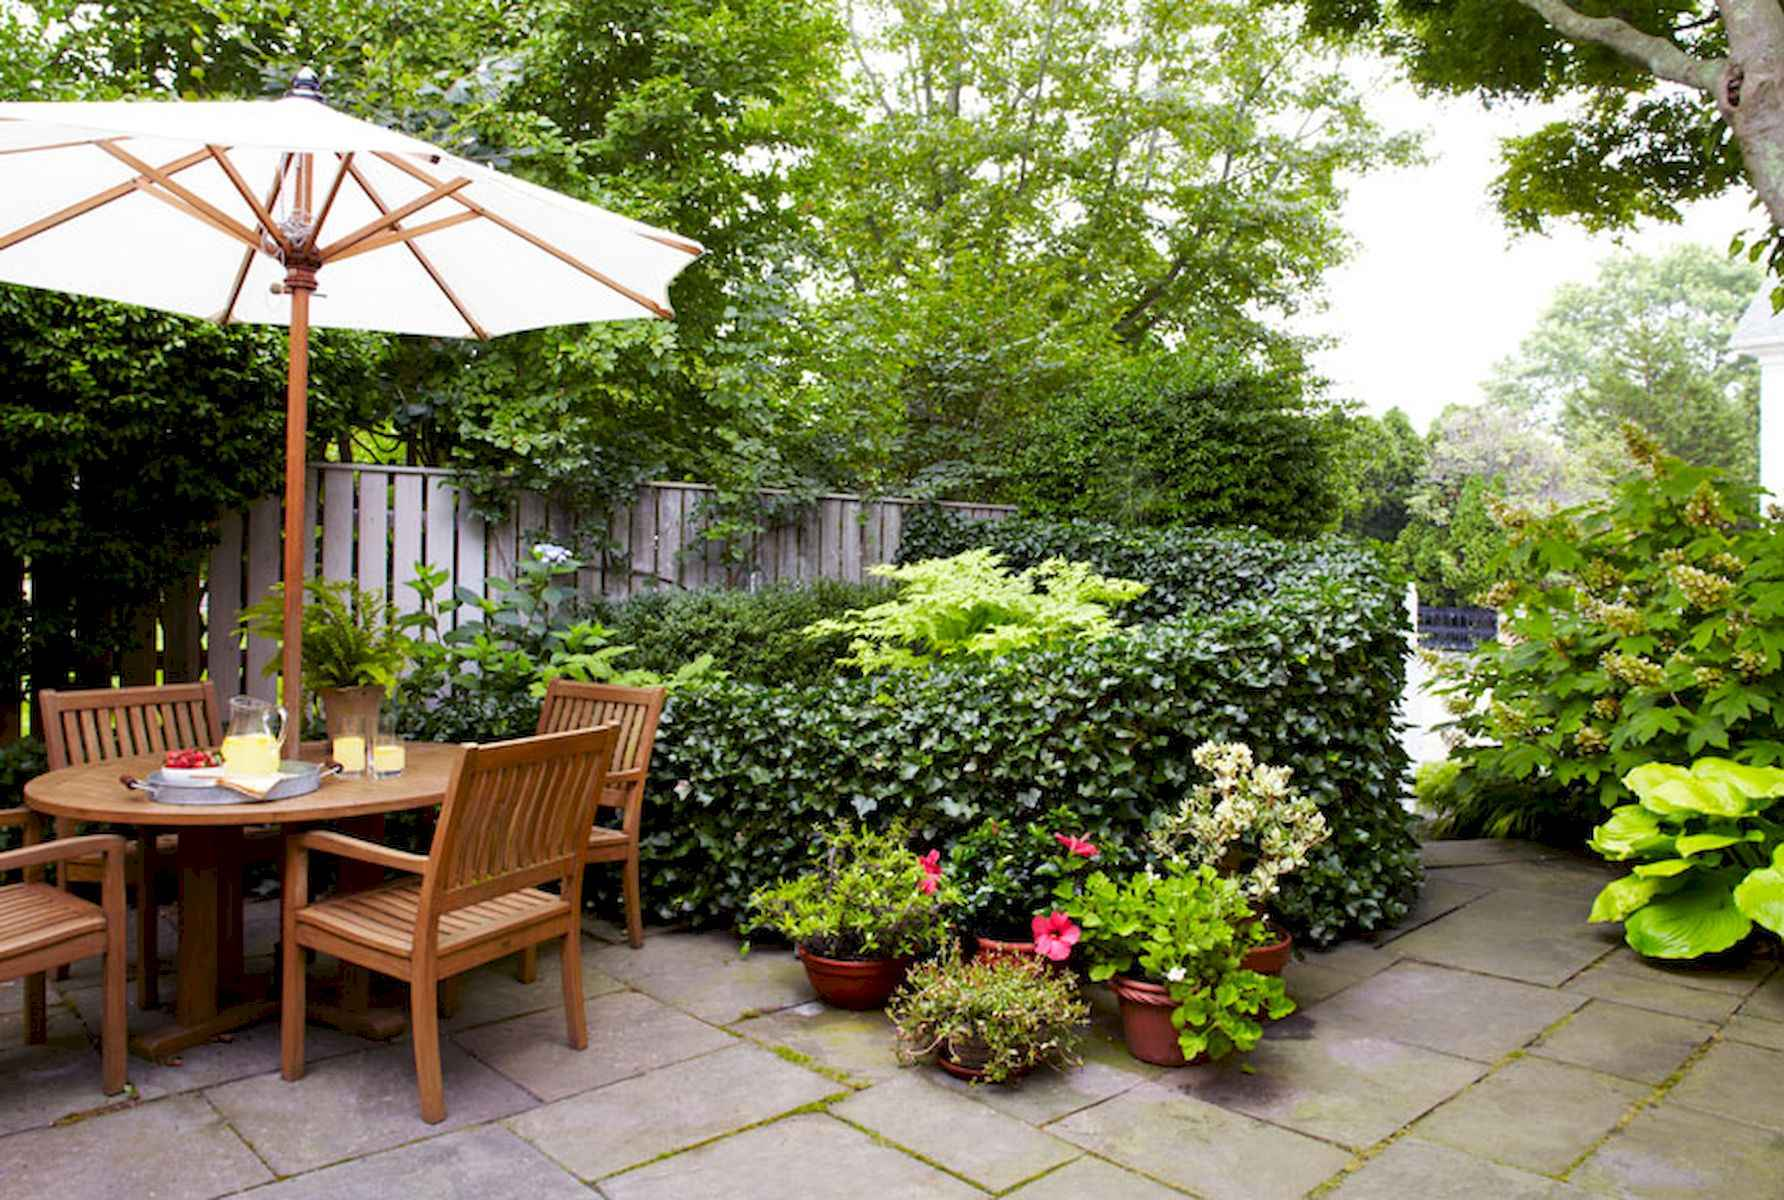 80 DIY Summery Backyard Projects Ideas Make Your Summer Awesome (61)